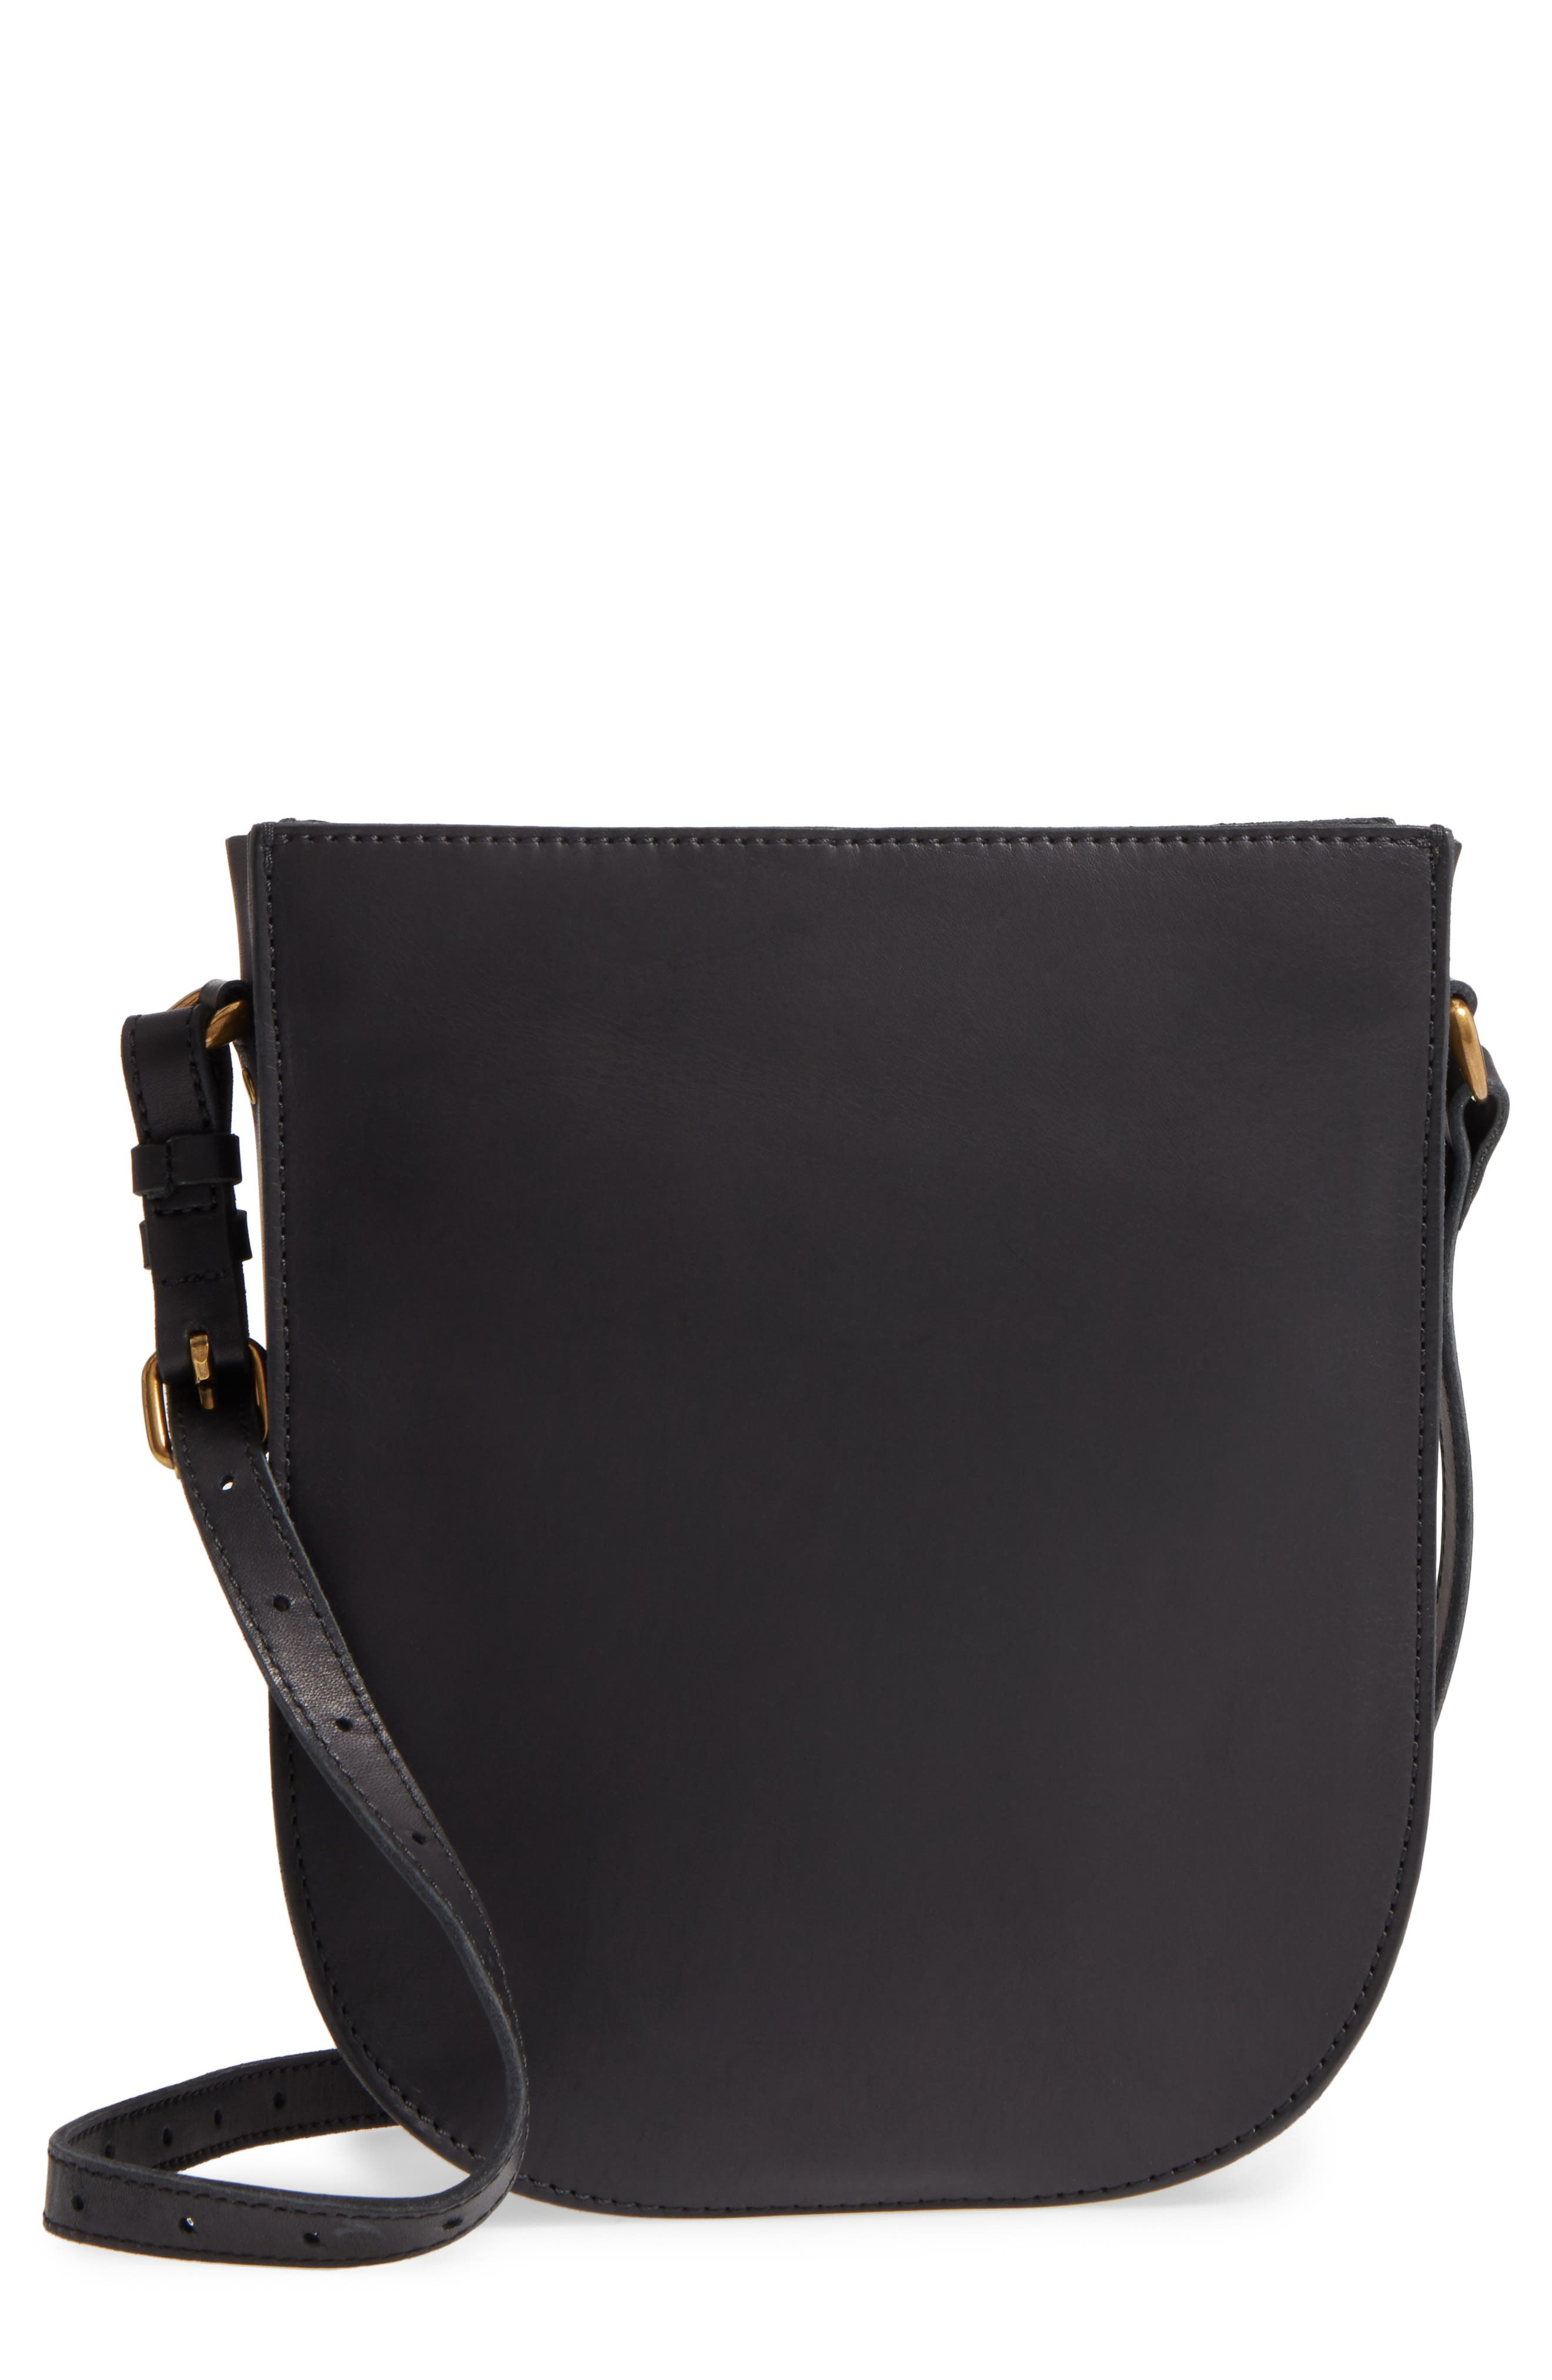 Madewell Juniper Vachetta Leather Shoulder Bag